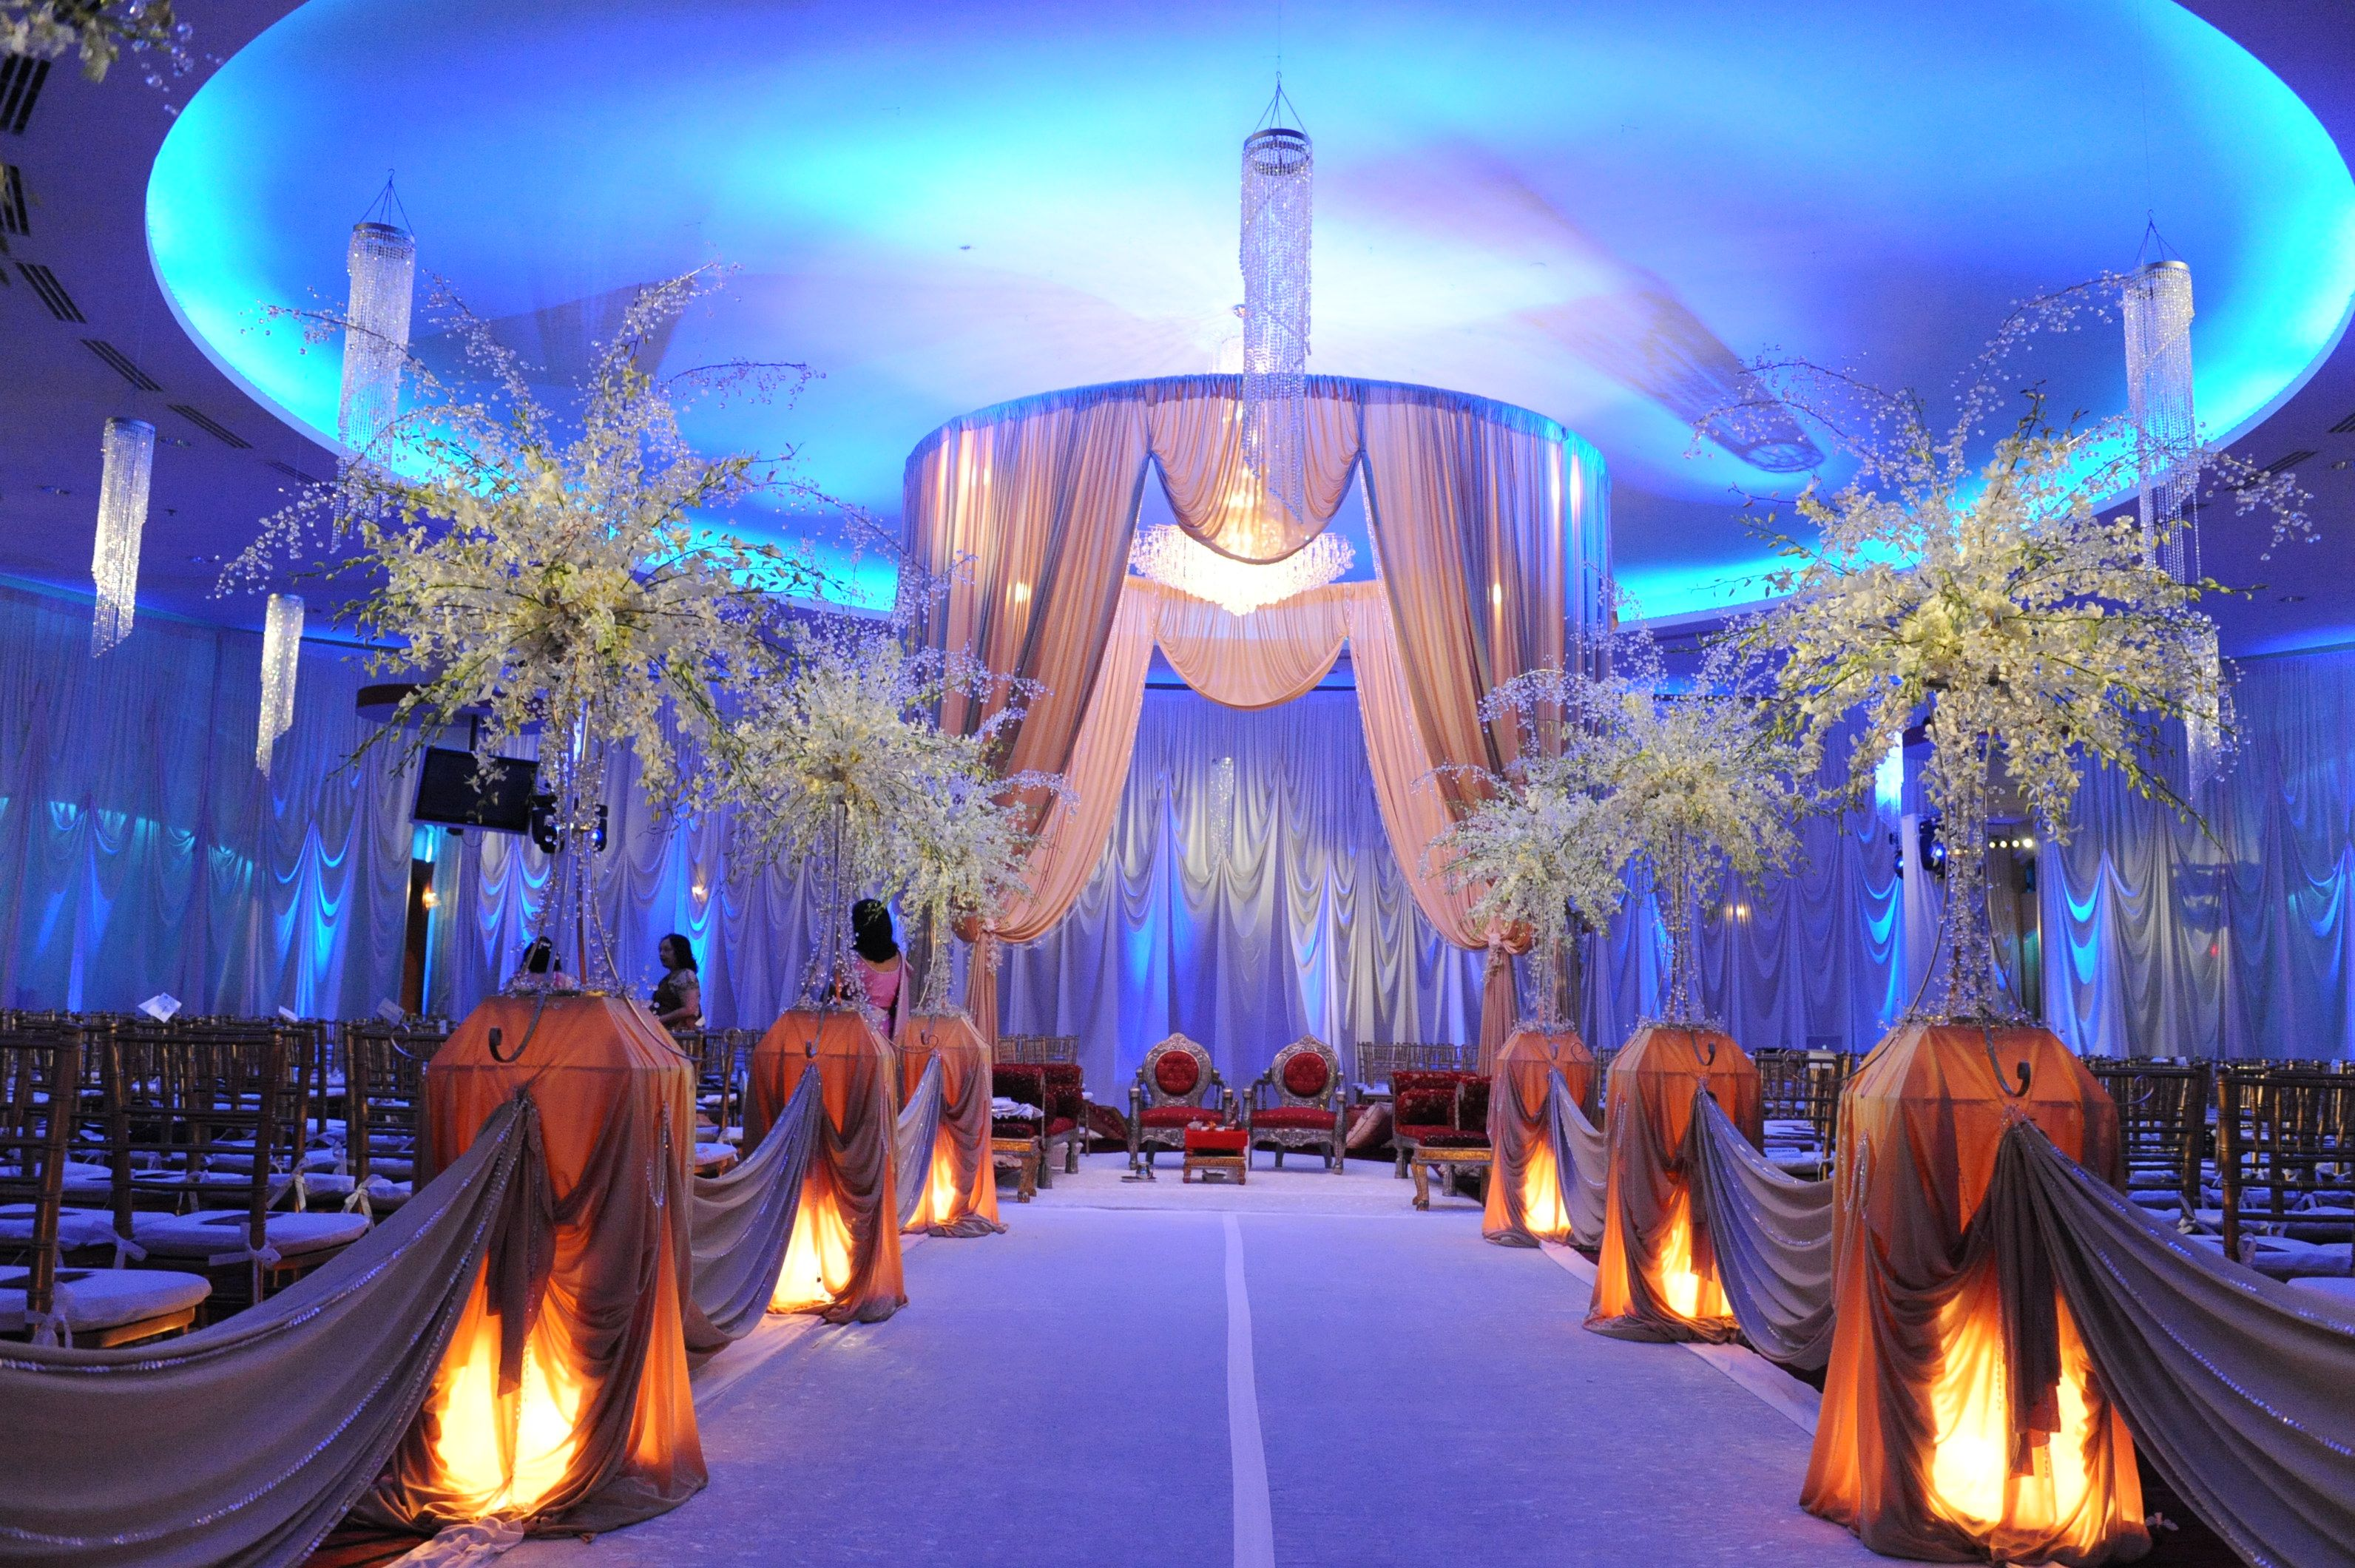 Wedding Planning Ideas: Ceremony Decor Idea- Need It In Our Colors